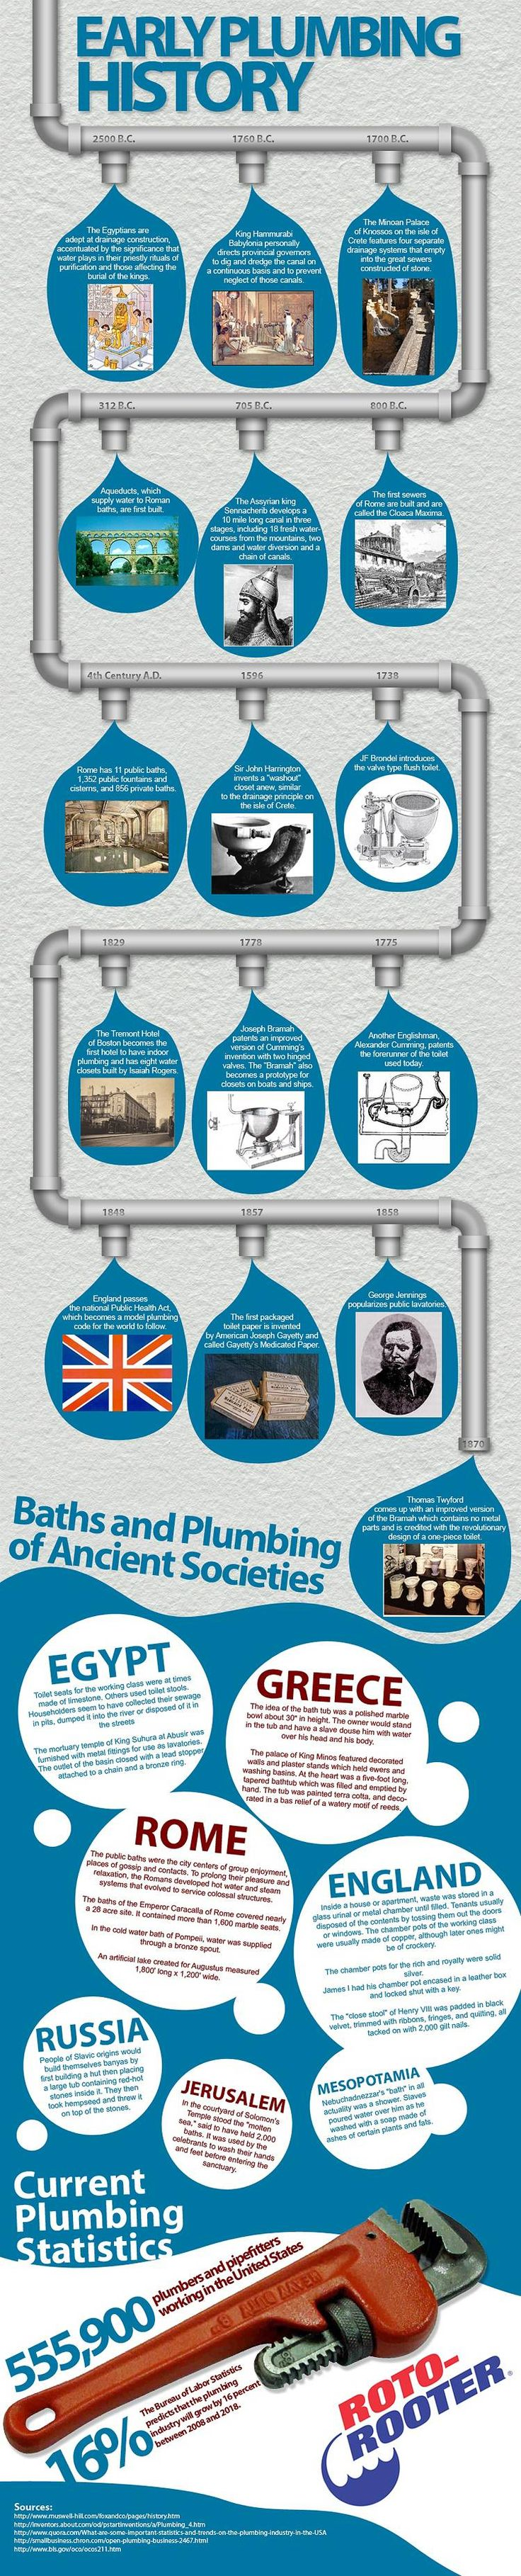 209 Best Plumbing Images On Pinterest Bathroom Ancient Artifacts And Bathroom Ideas